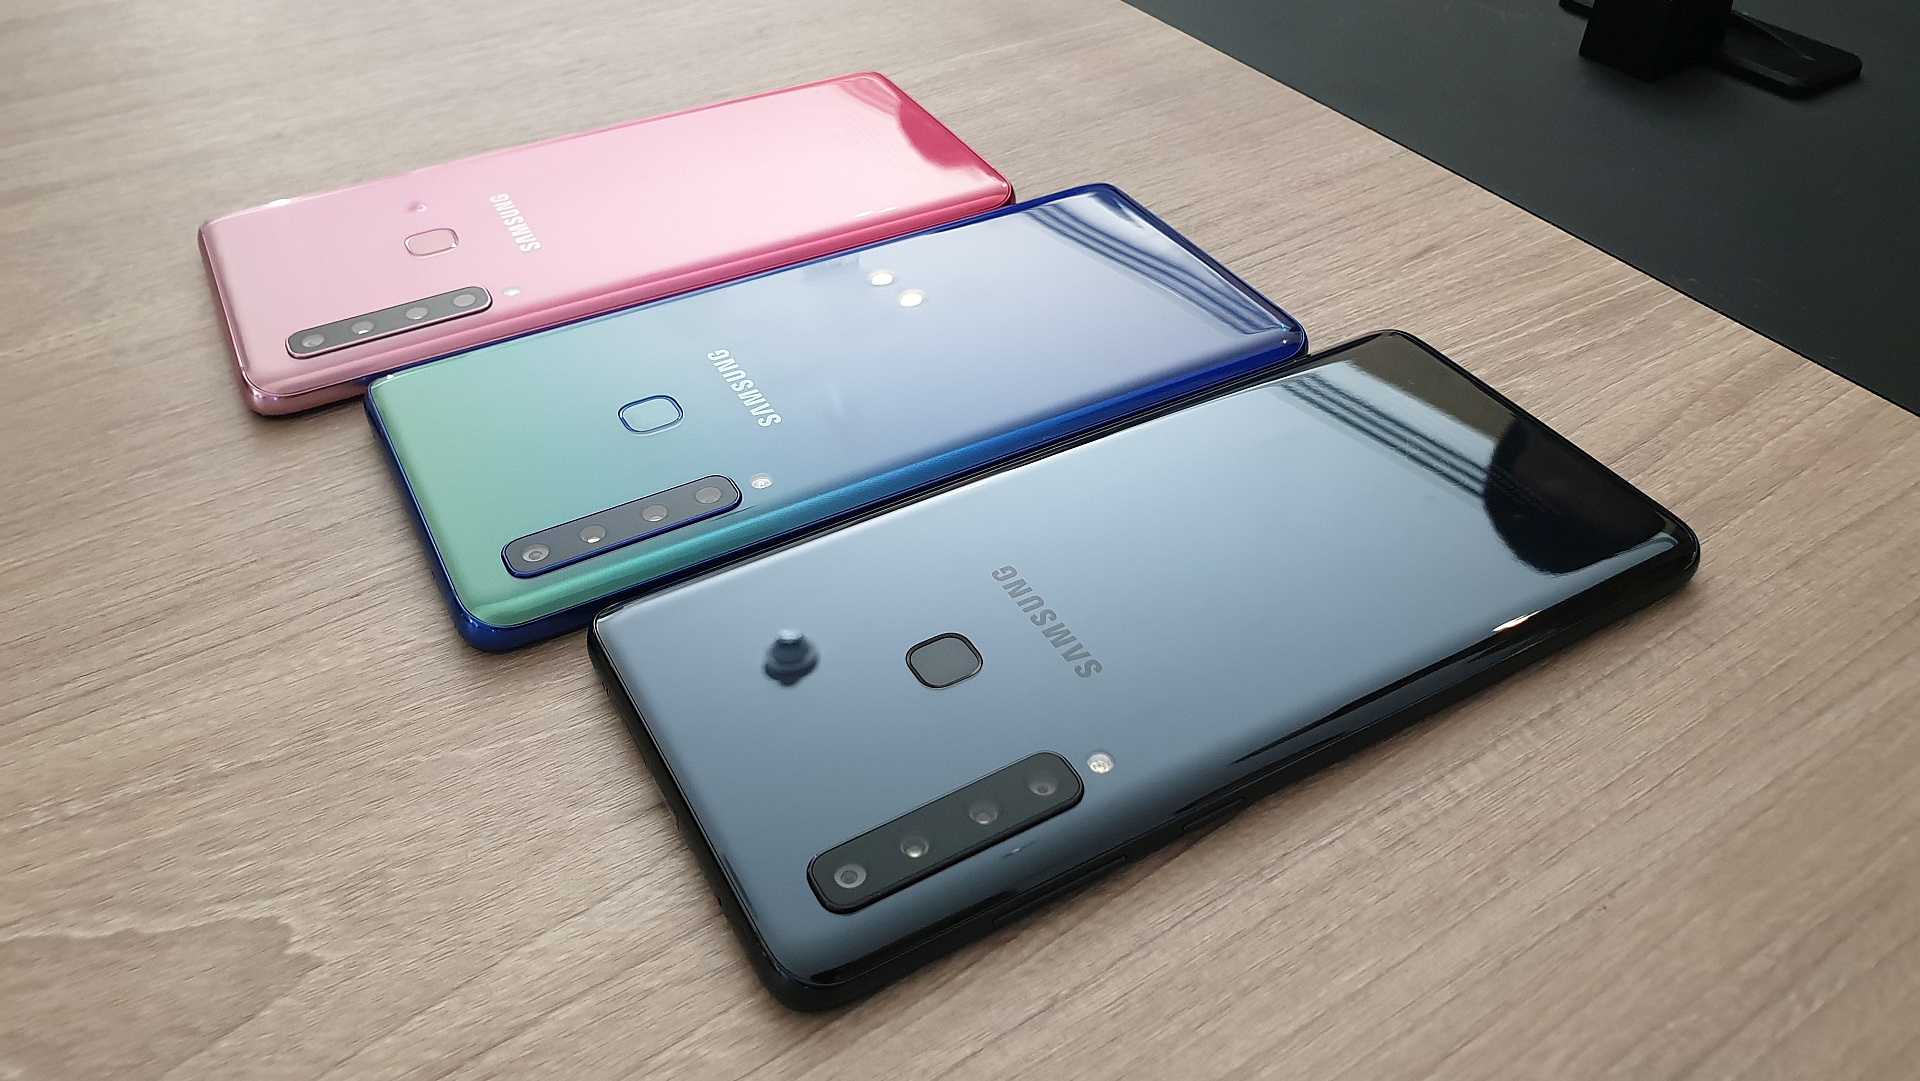 Galaxy A9 colors